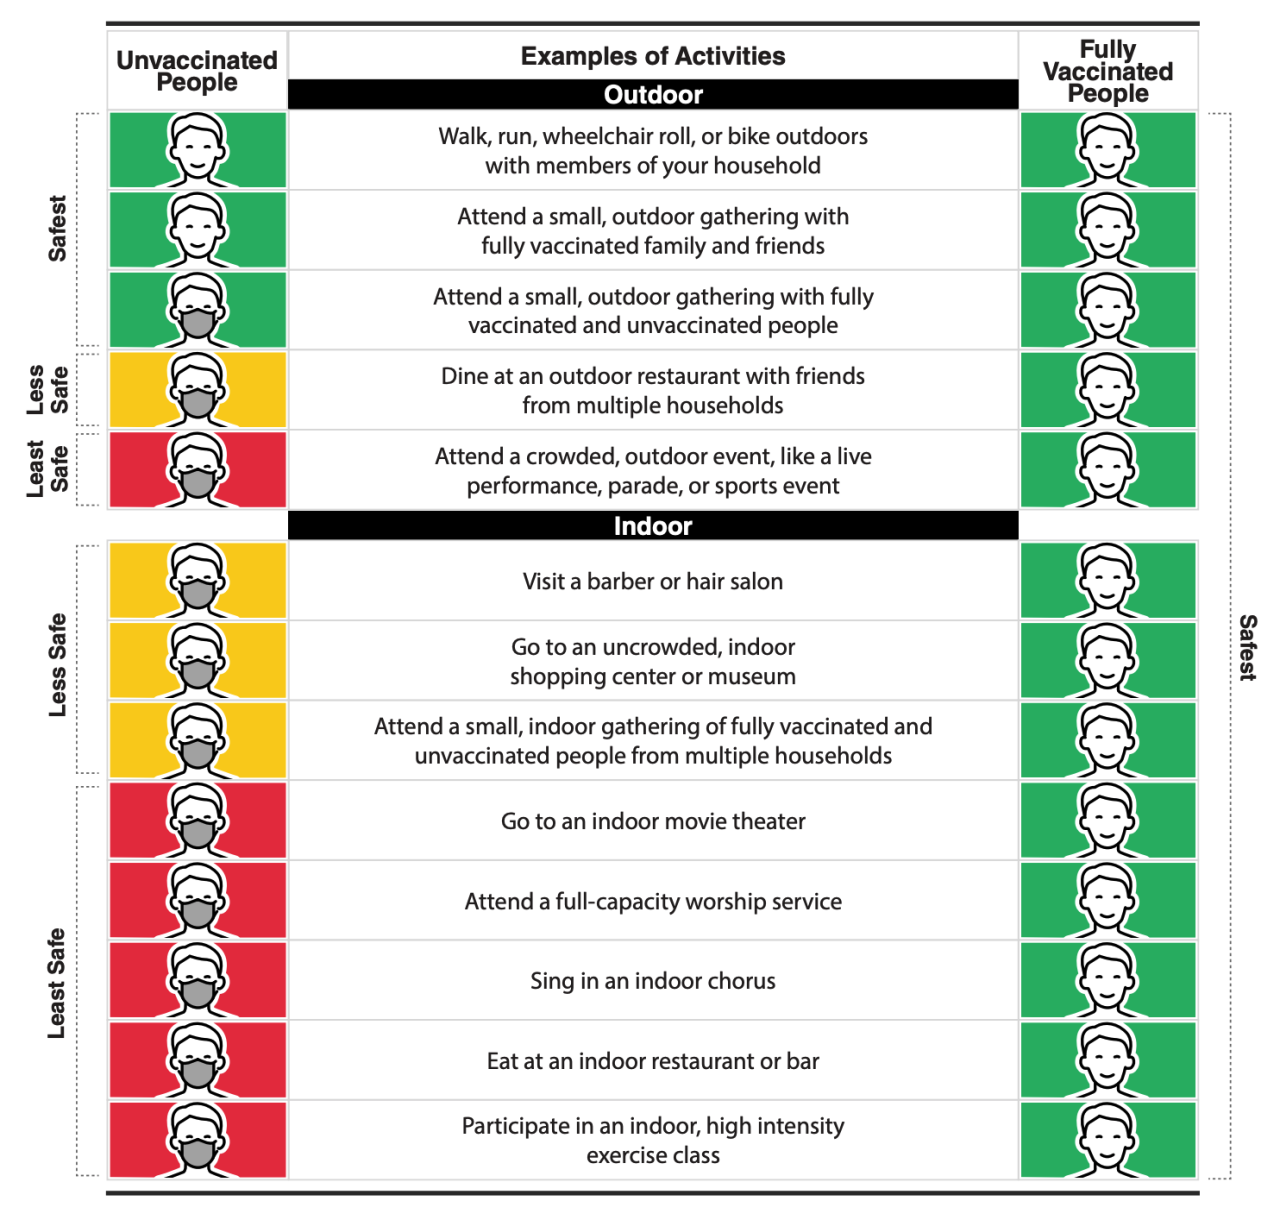 CDC COVID-19 vaccination safety scale